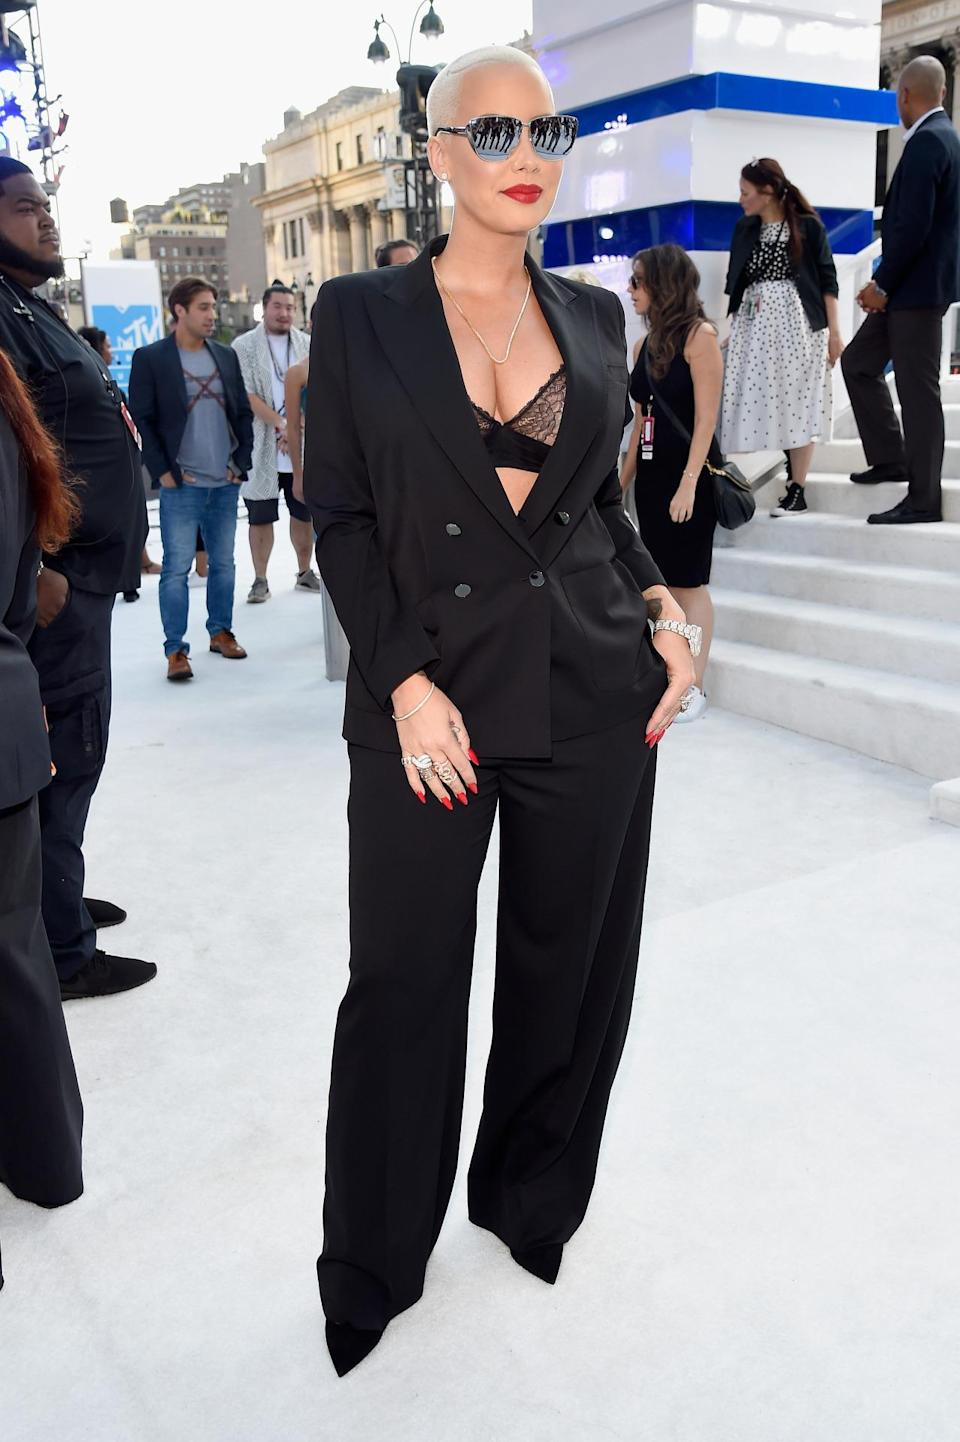 <p><b>Amber Rose revealing her bra in a black suit </b></p><p>Amber Rose was totally business in a black suit — and then decided to sex it up by wearing just a lace bra underneath. She also added some reflective sunglasses to fend off the sun (well, and shade). <i>(Photo: Getty Images)</i></p>